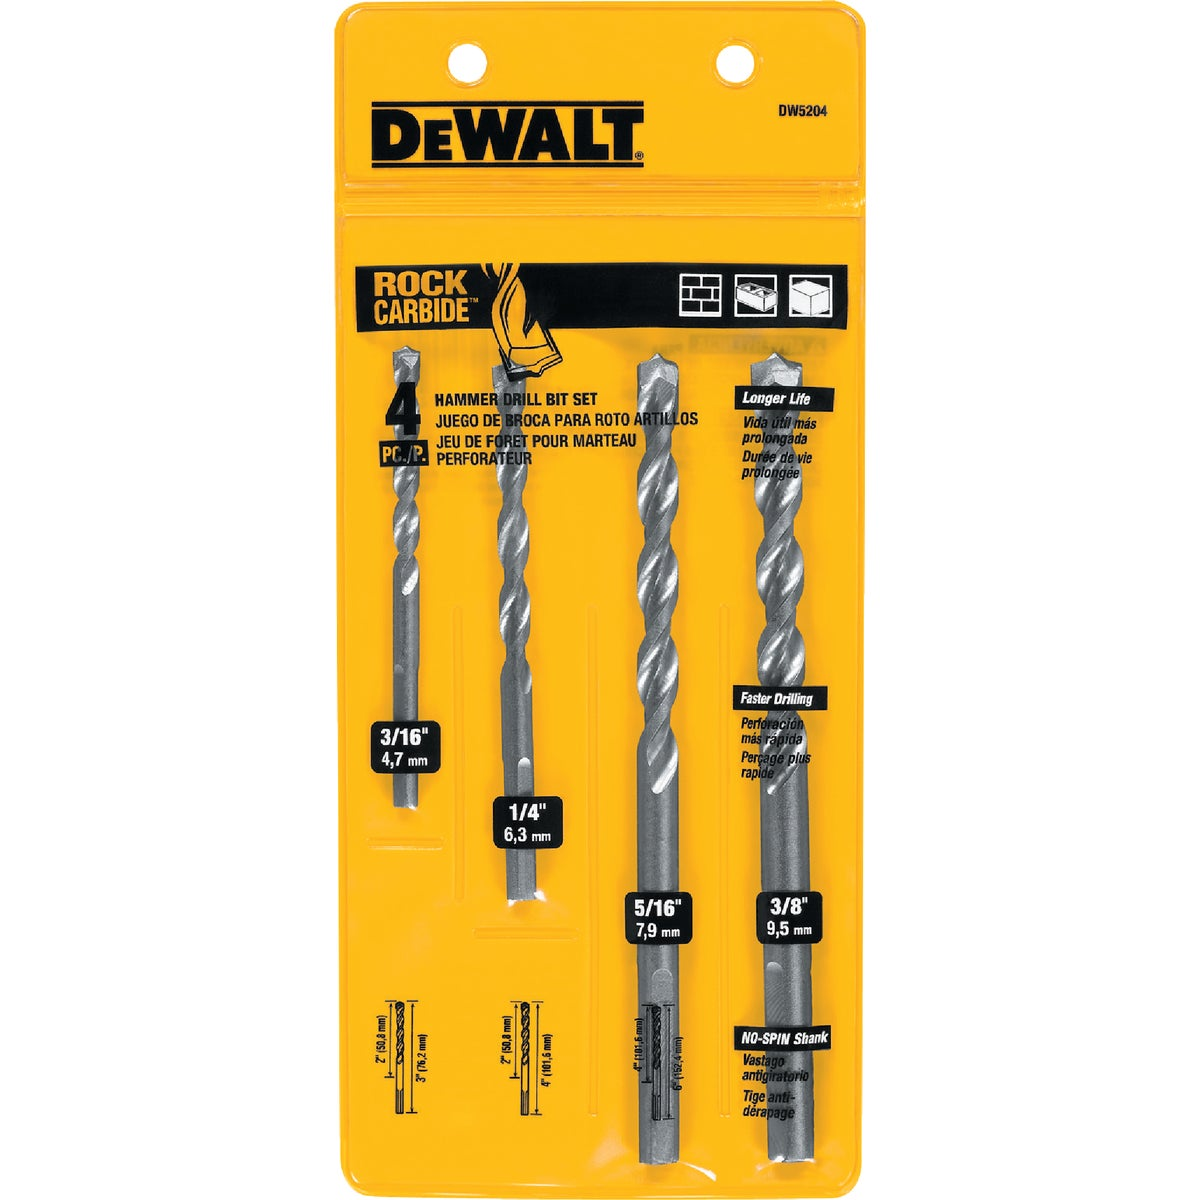 4PC MASONRY BIT - DW5204 by DeWalt